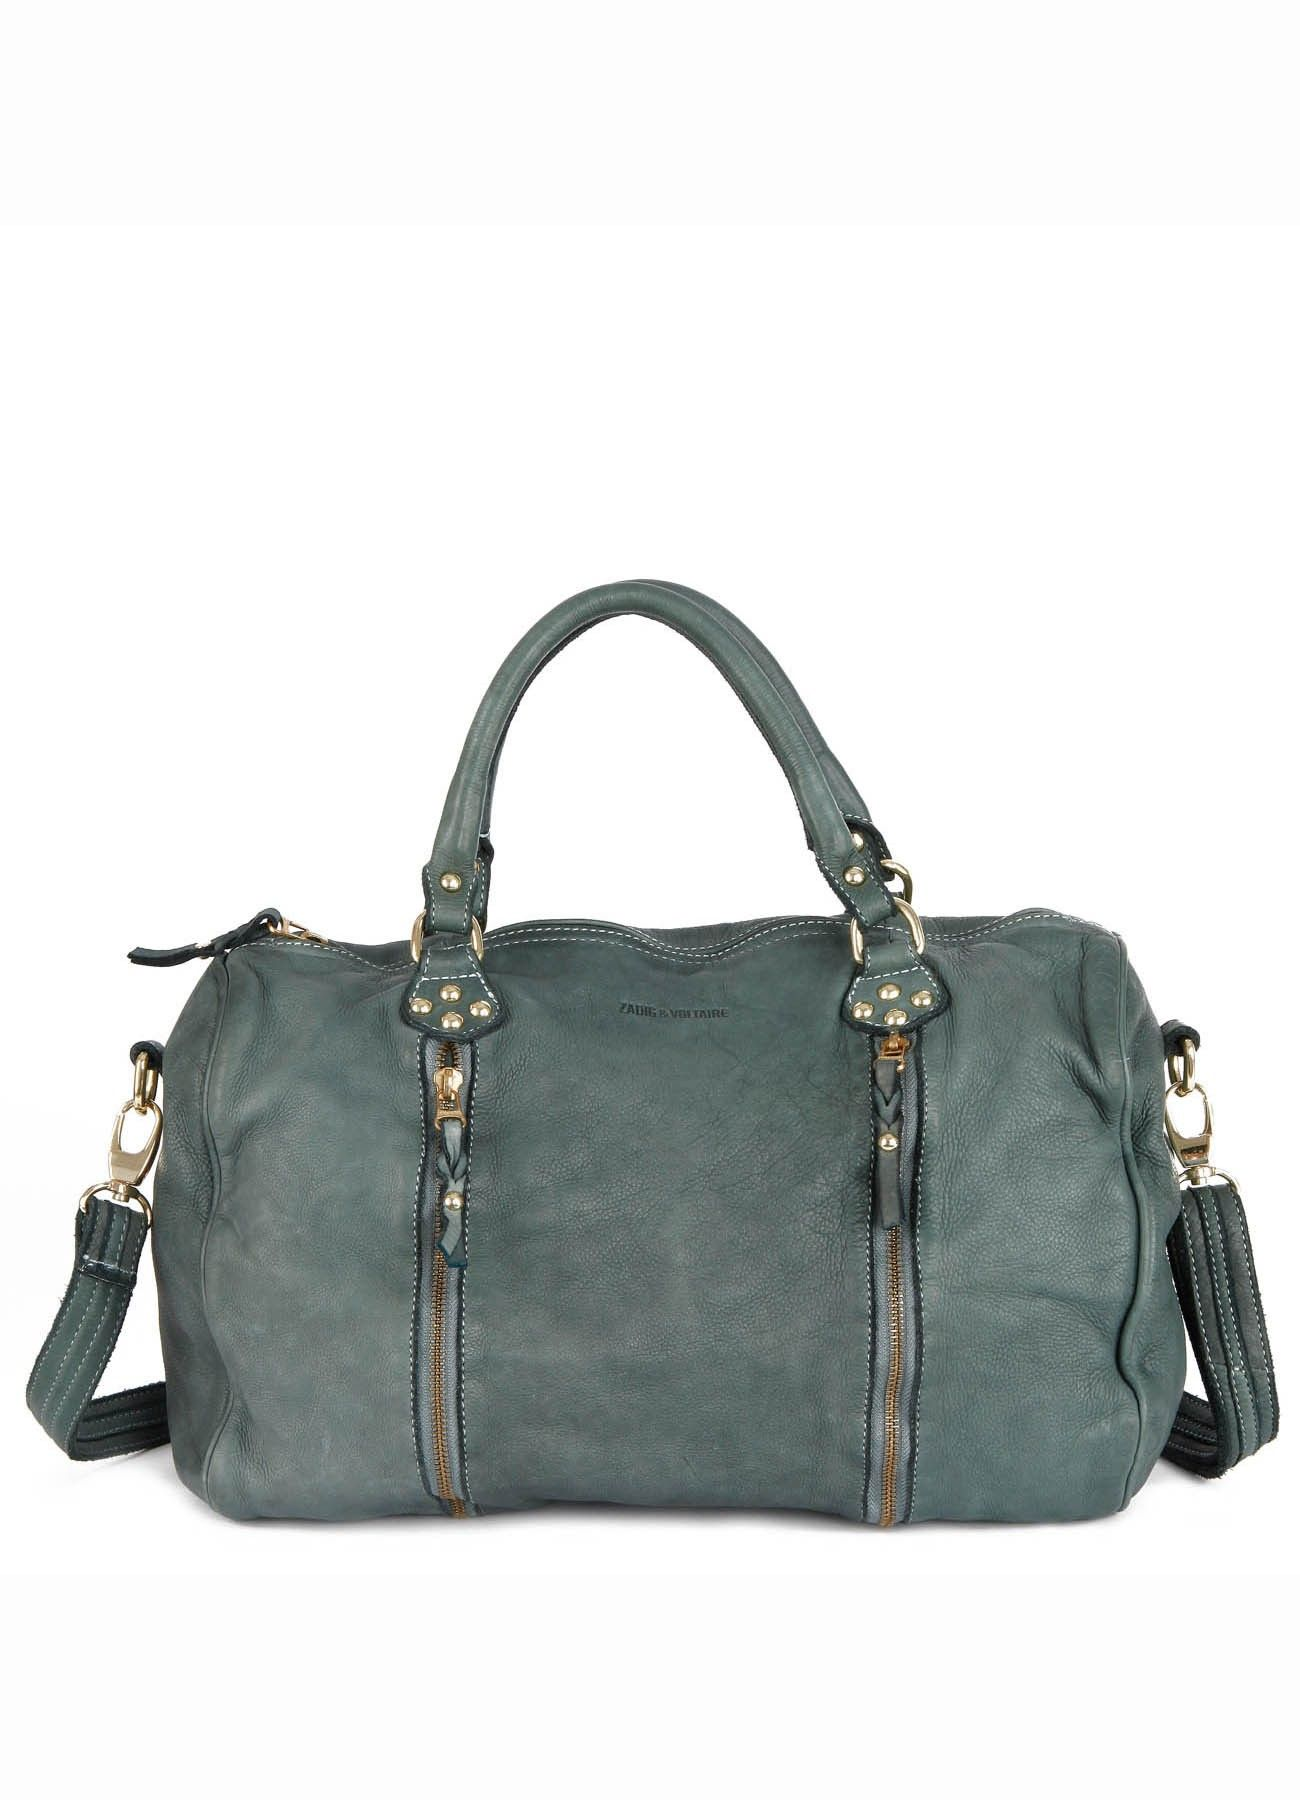 fa296c99f8 Sunny City Bag | £430 | BUY AT ZADIG-ET-VOLTAIRE.COM (located by  e-tailtherapy.com - the best guide to online shopping)